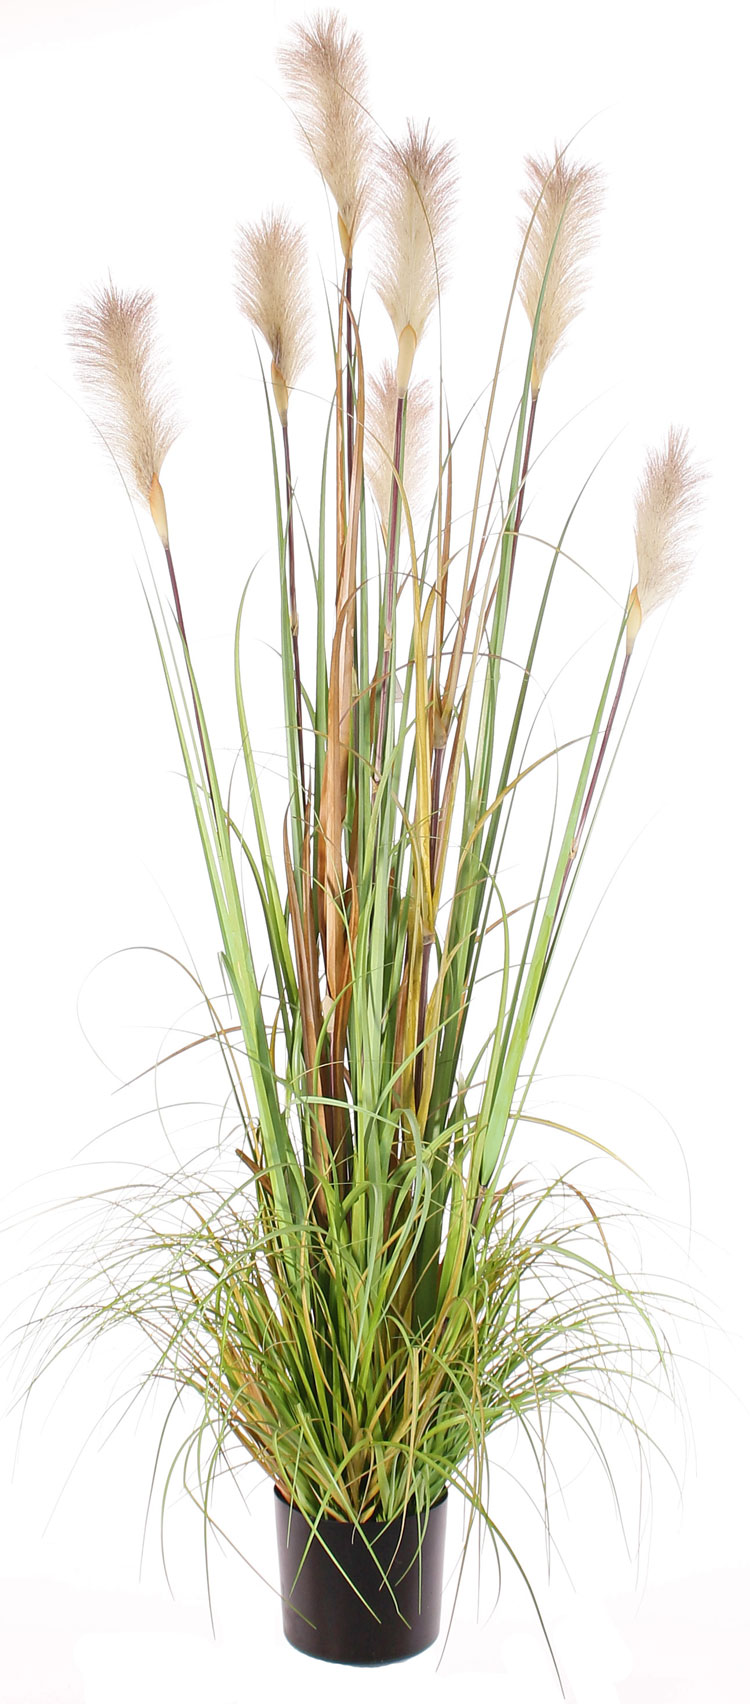 Artificial Flowers And Plants Wholesale Top Art Int Detailansicht Flowering Plants Artificial Reed Grass Plant X7 182cm In Plastic Pot Special Offer